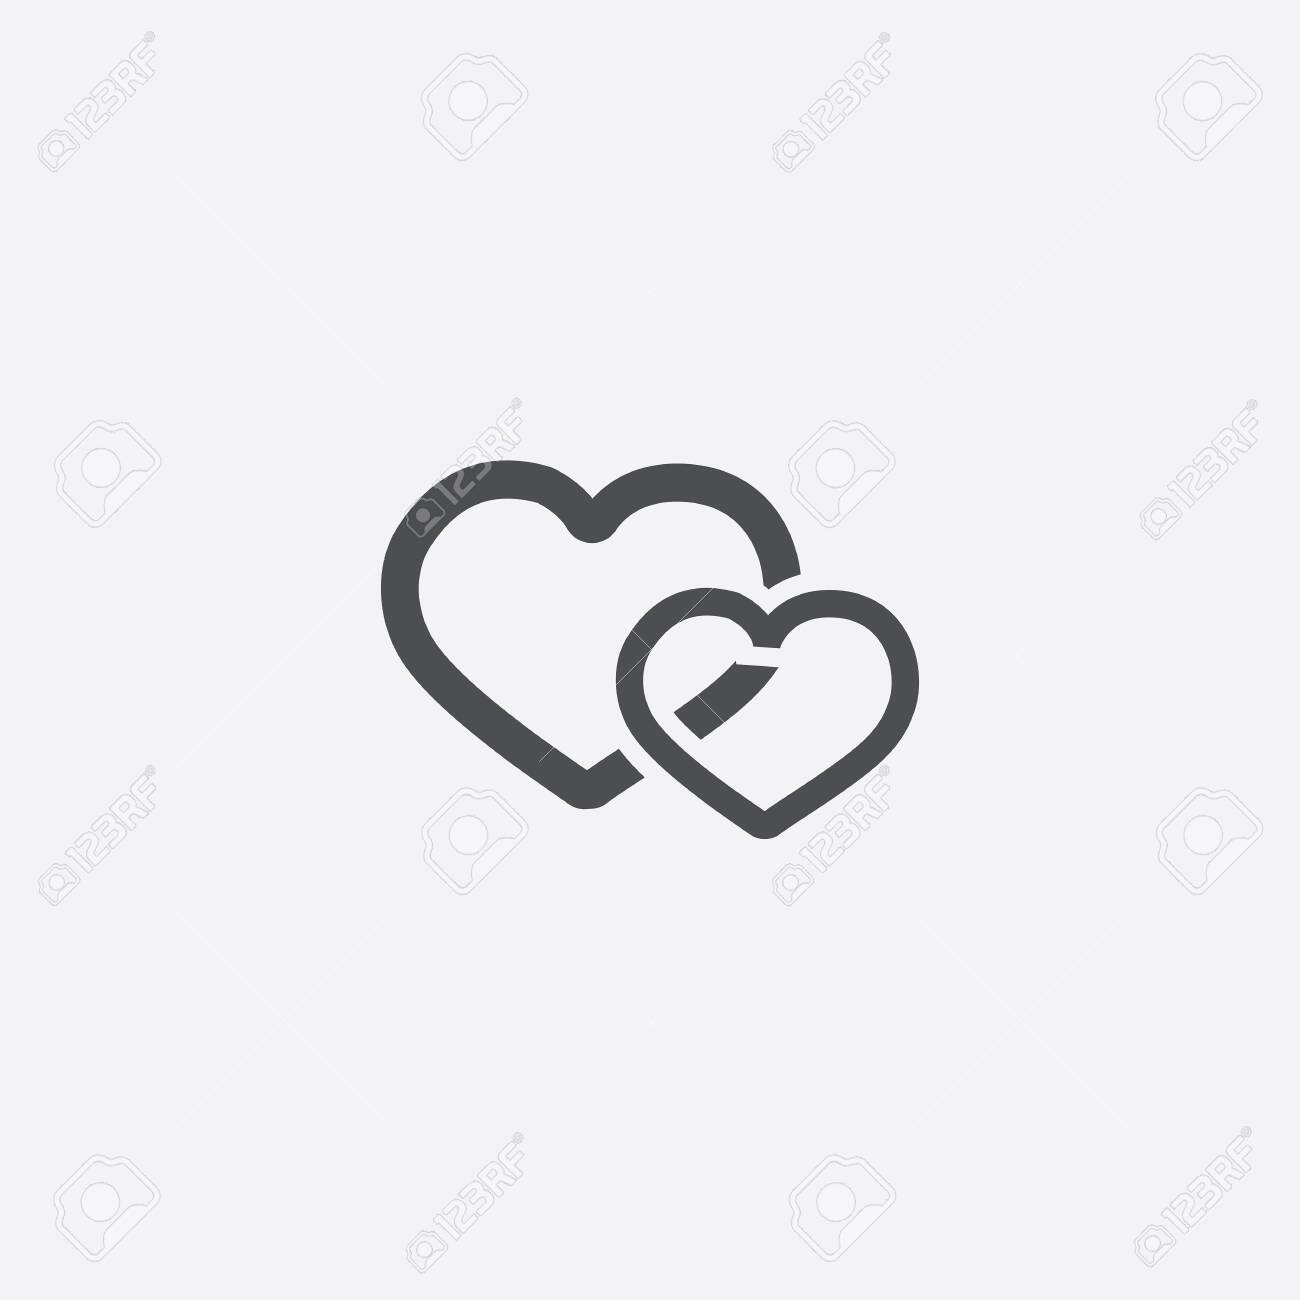 two hearts icon - 143431855